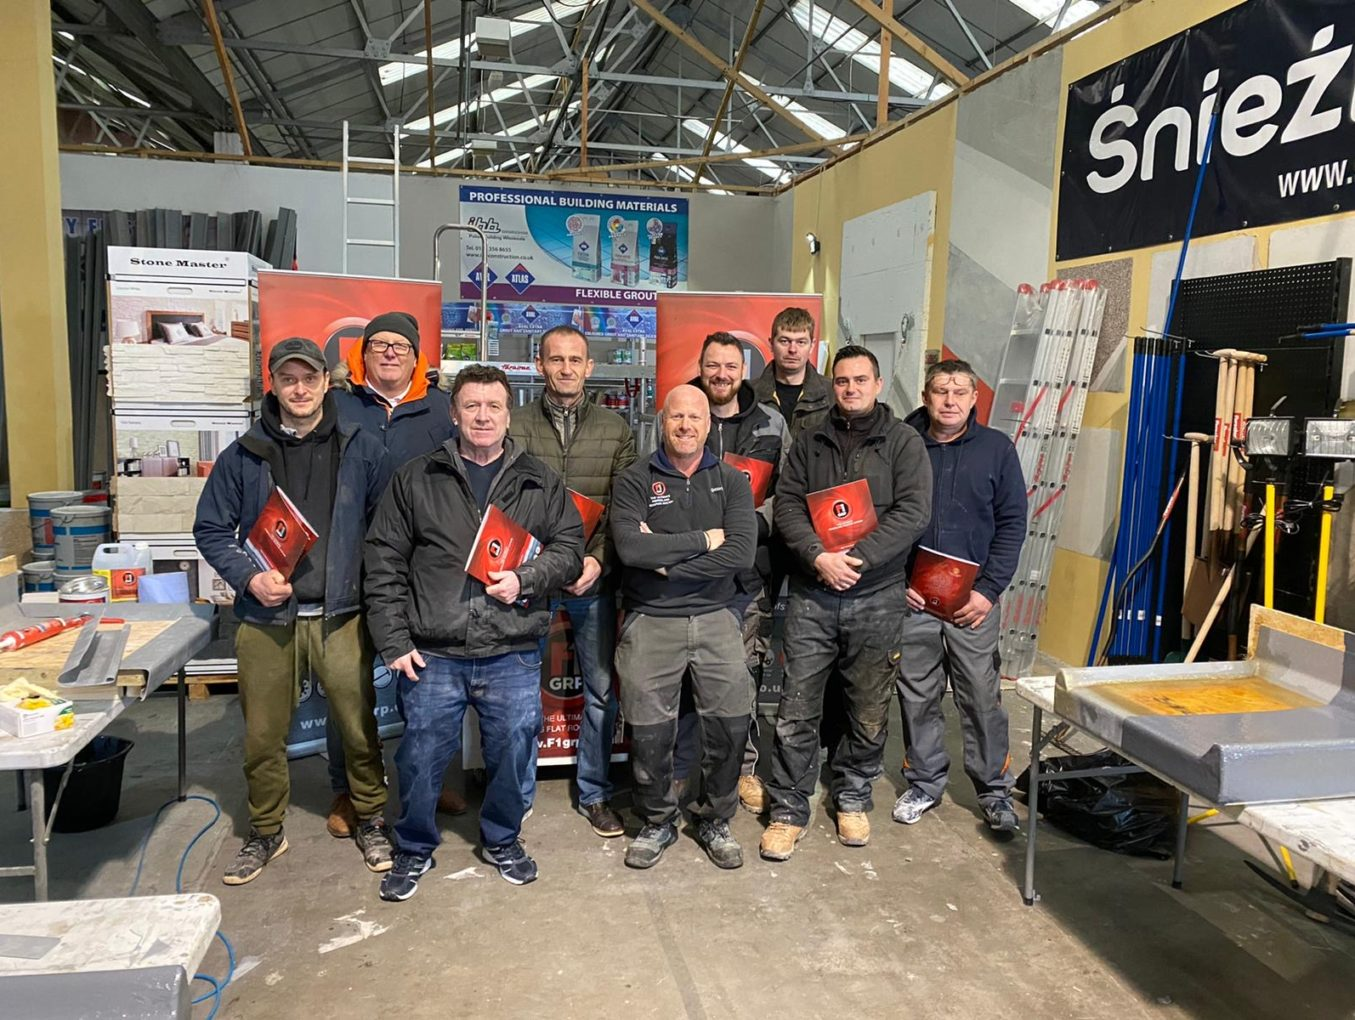 Congratulations to new roofing contractors